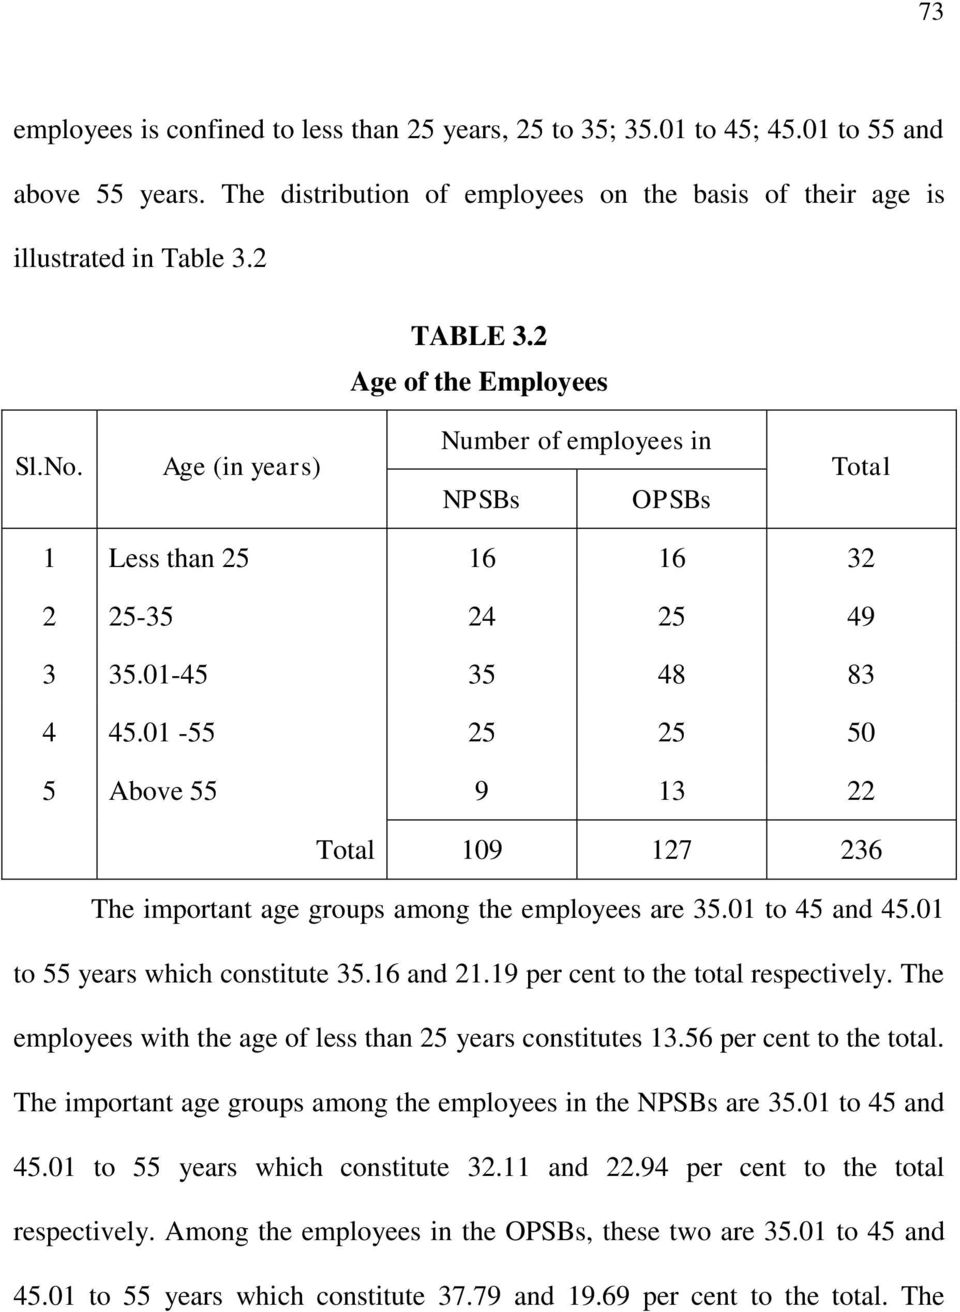 01-55 25 25 50 5 Above 55 9 13 22 Total 109 127 236 The important age groups among the employees are 35.01 to 45 and 45.01 to 55 years which constitute 35.16 and 21.